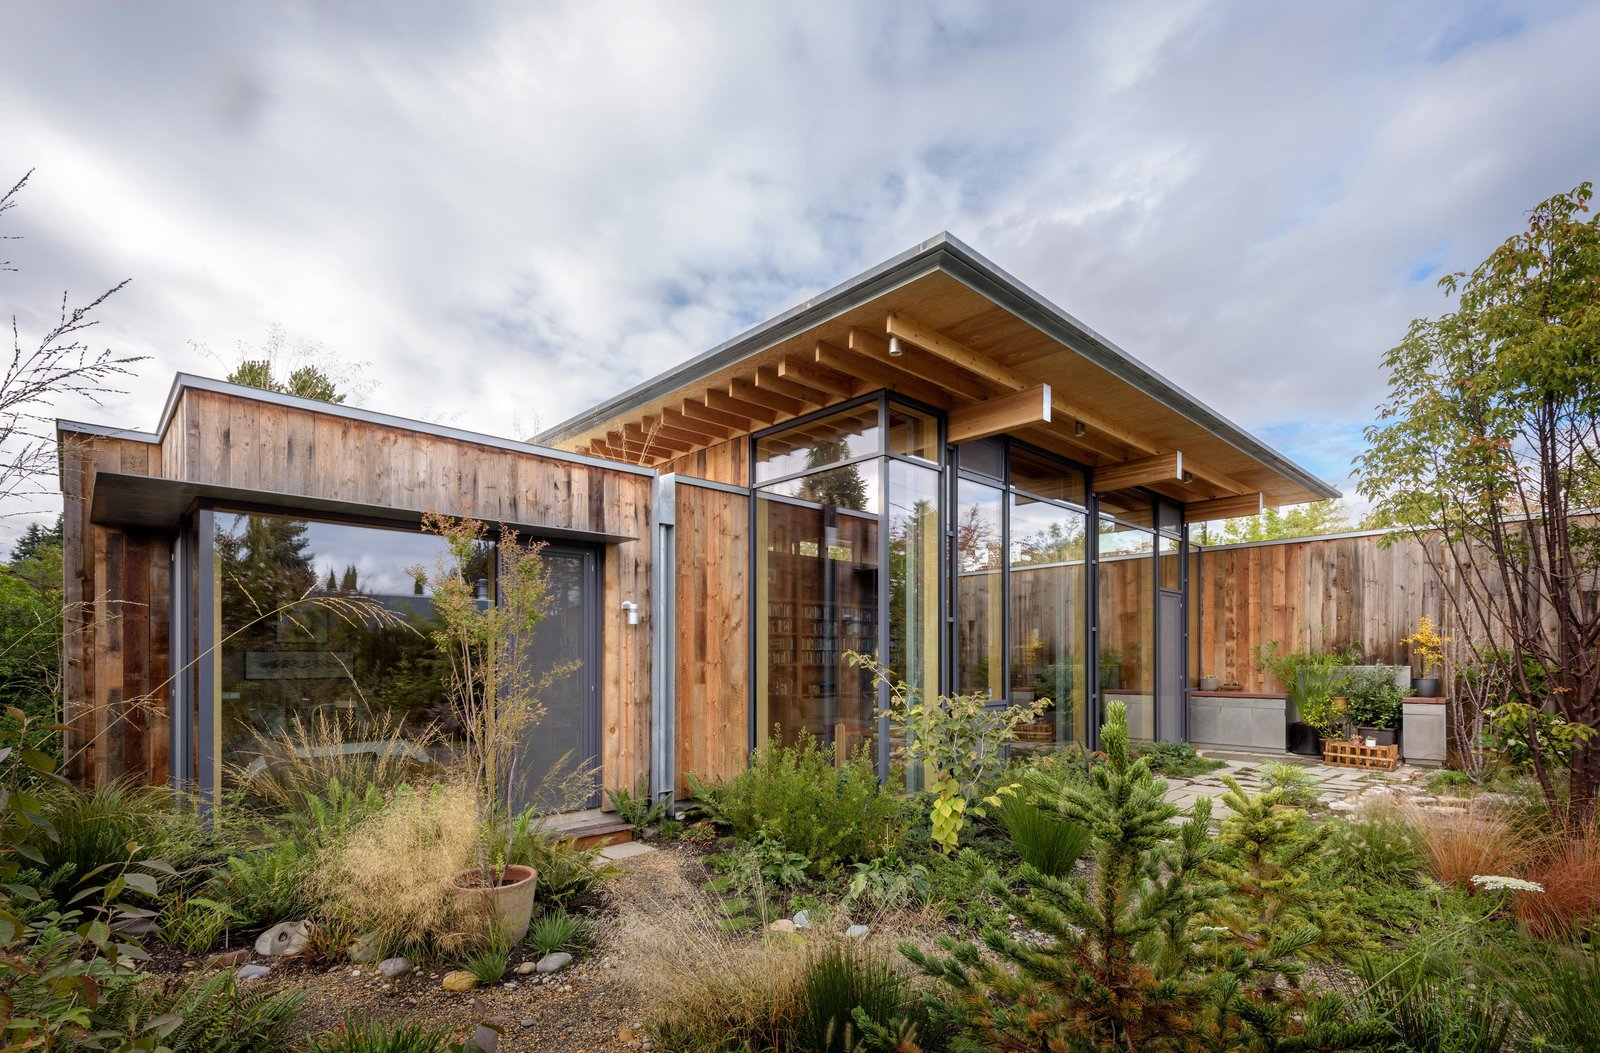 Immersed in Nature, This City Cabin Targets Net-Zero Energy